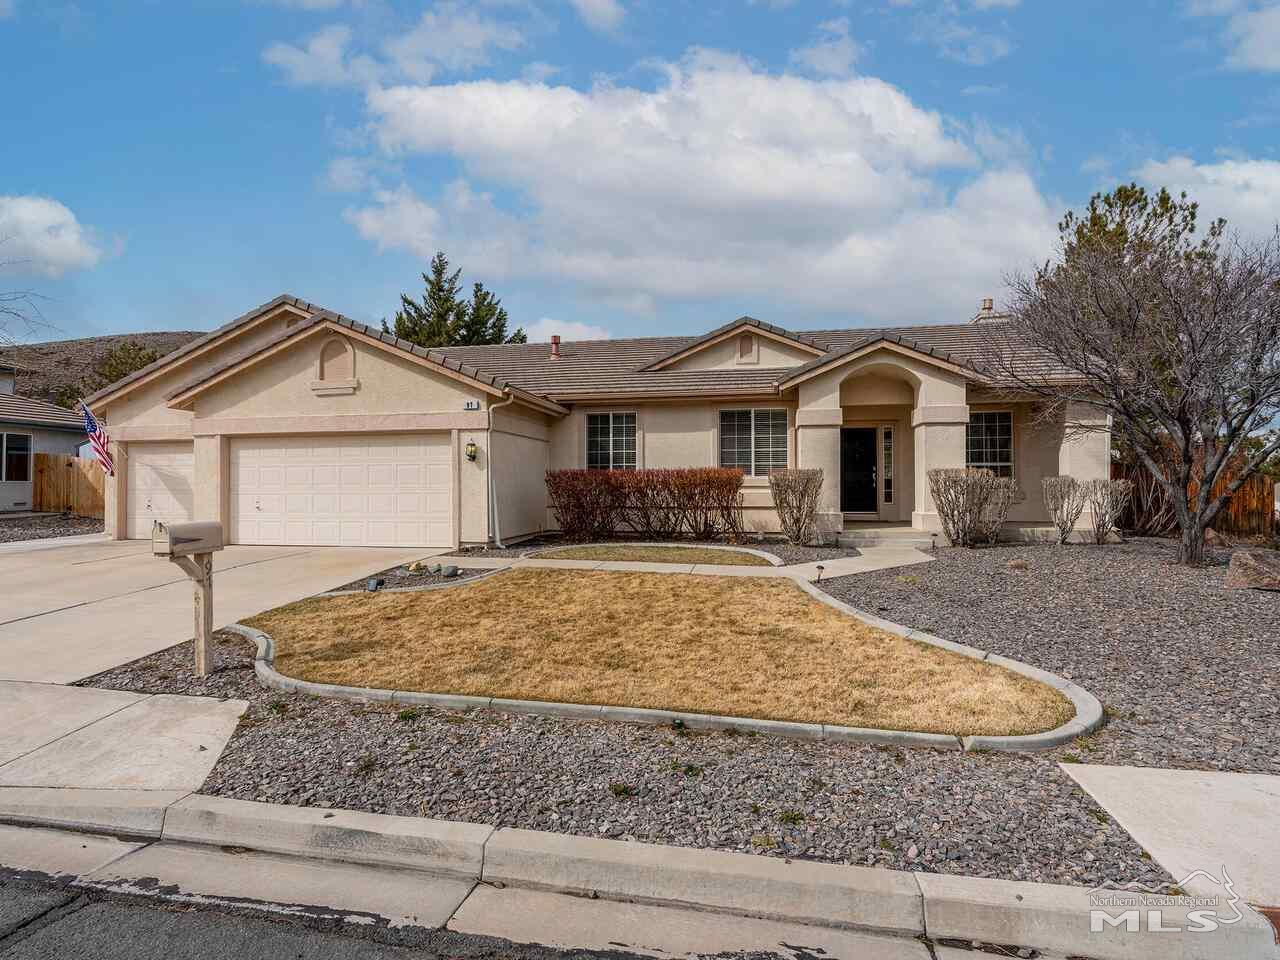 Image for 97 Clear Creek, Reno, NV 89502-8713